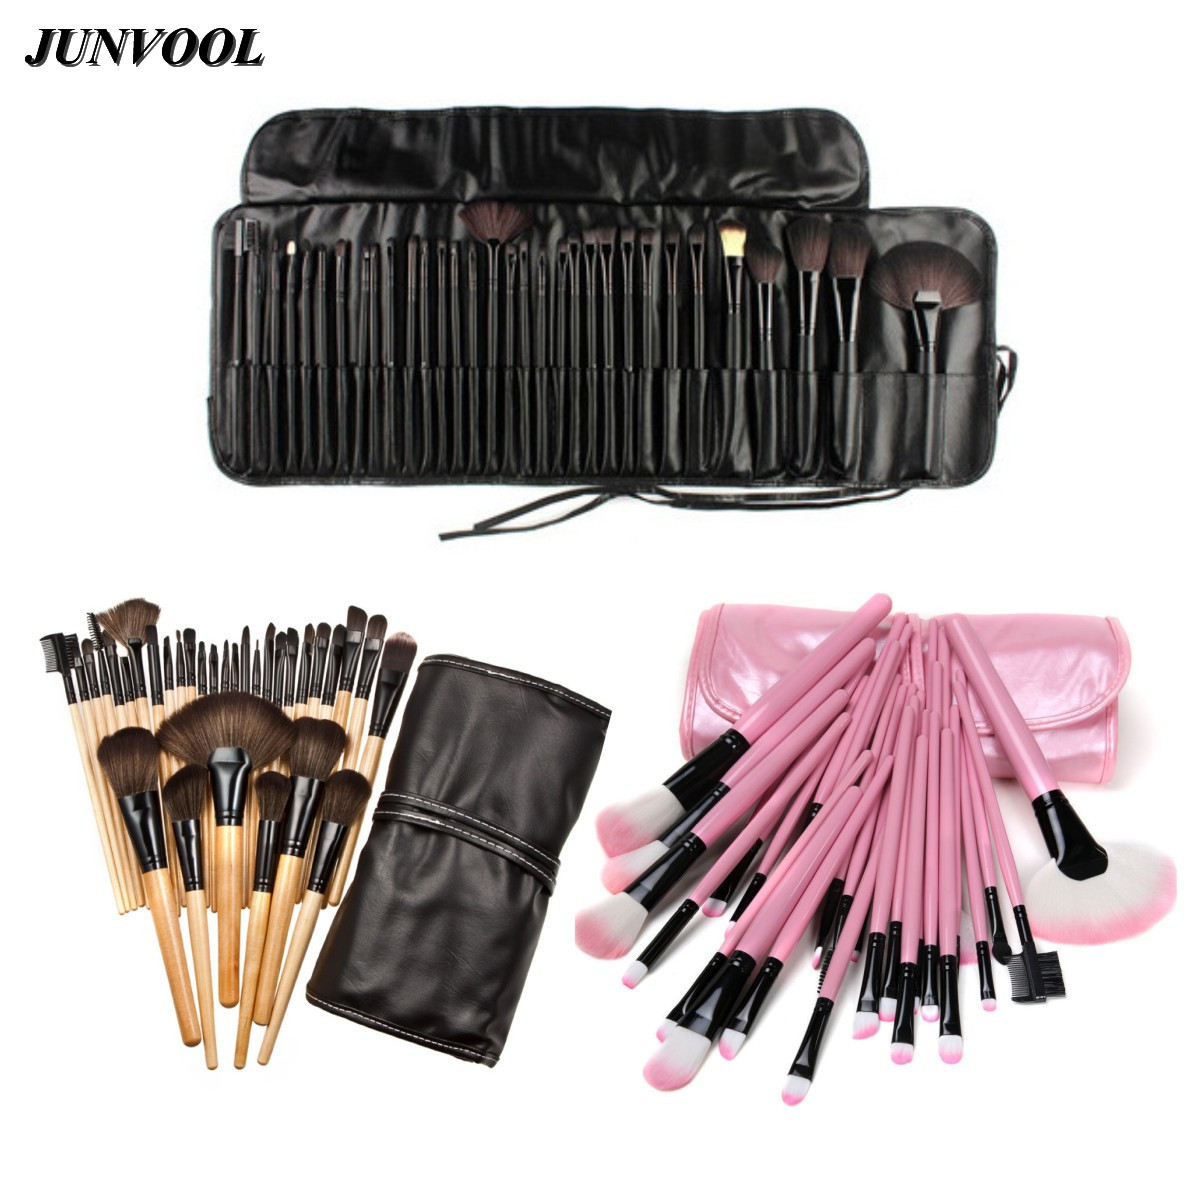 32pcs Mini Pro Makeup Brushes Set&Ke Soft Synthetic Hair Make Up Tools Cosmetic Beauty Pink Wood Black Brush+ 1 Leather Bag Case addfavor acrylic handle beauty cosmetic face clean mask brushes eyes skin care make up tools soft makeup synthetic hair brush